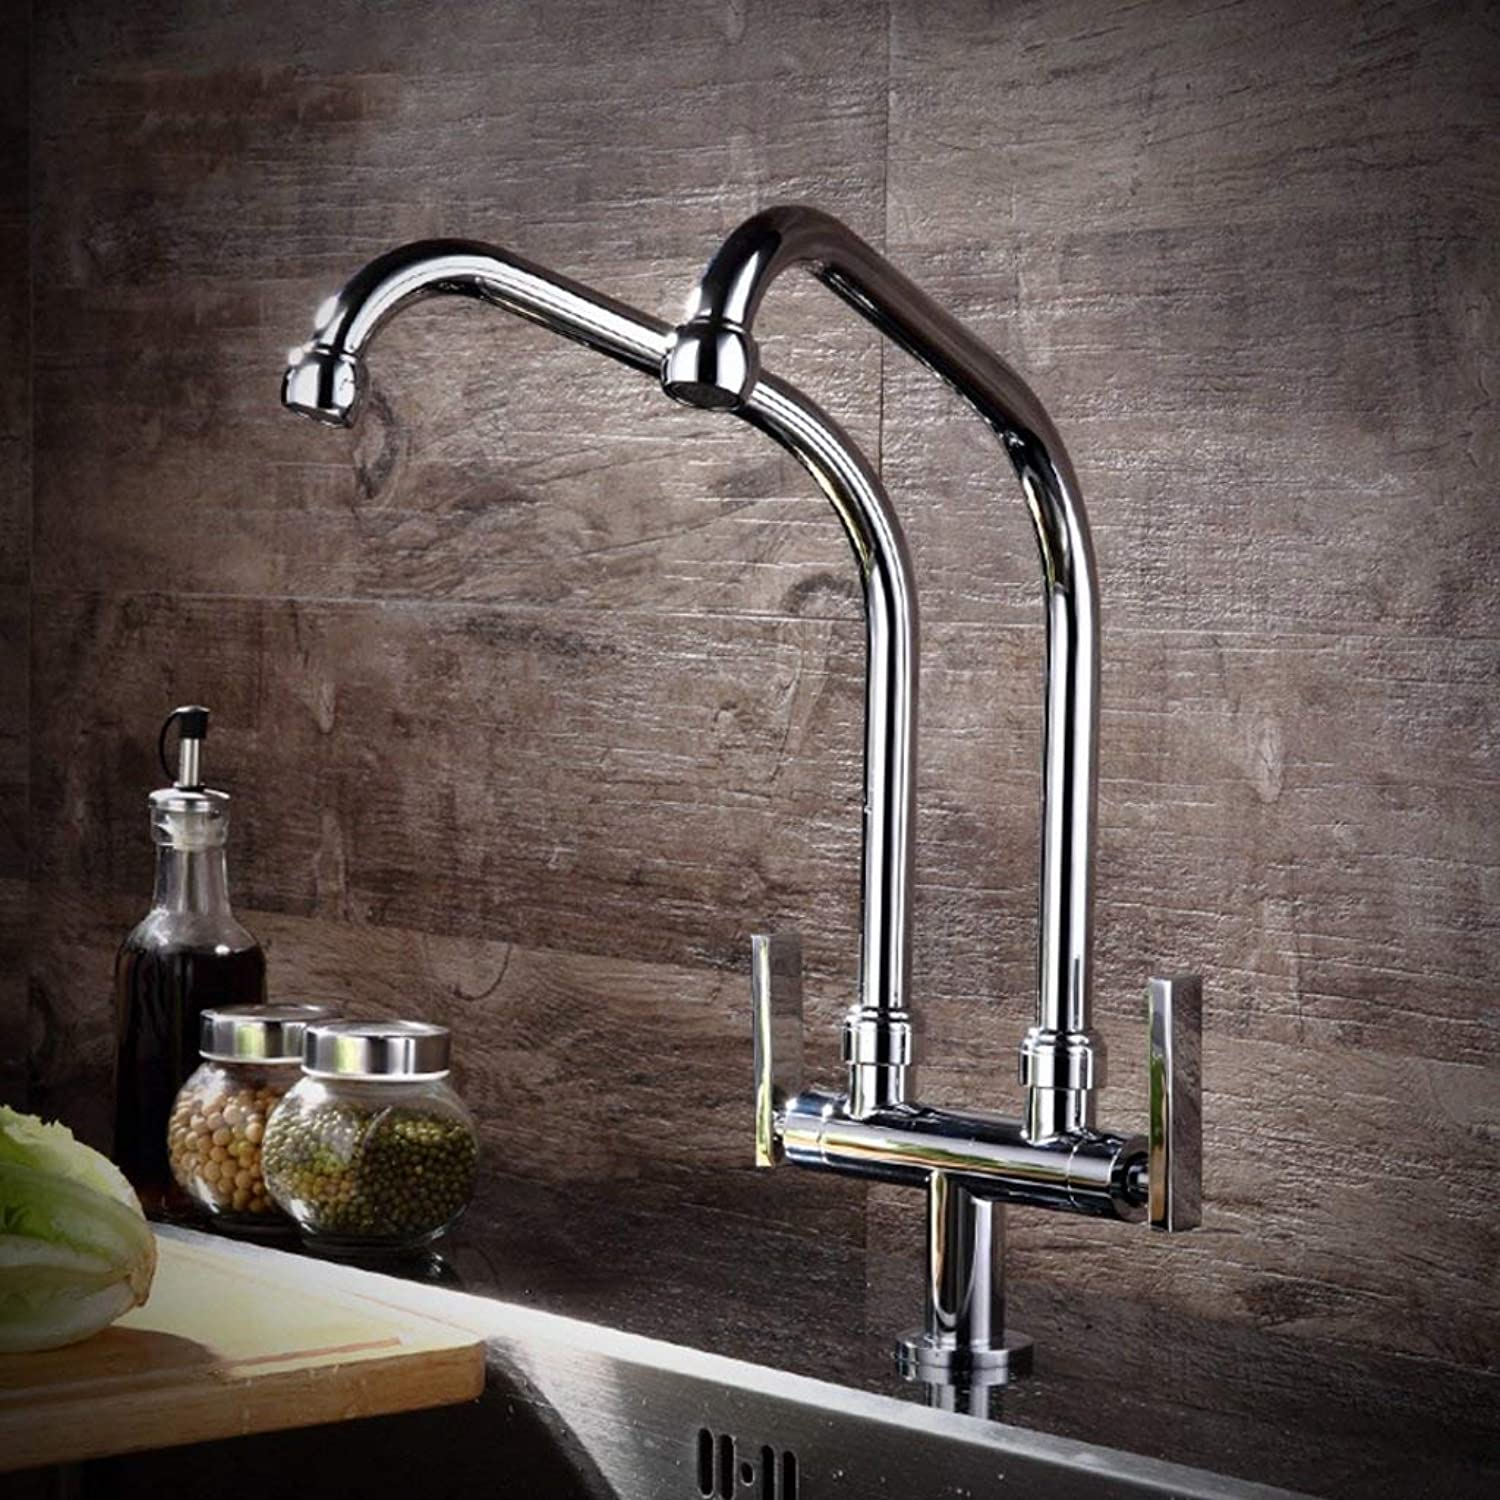 BMY Kitchen Sink Taps Modern Minimalist Pure Copper Kitchen Faucet Cold Type Double Pipe Faucet Wash Basin Sink Can Be redated Faucet (Size   B)